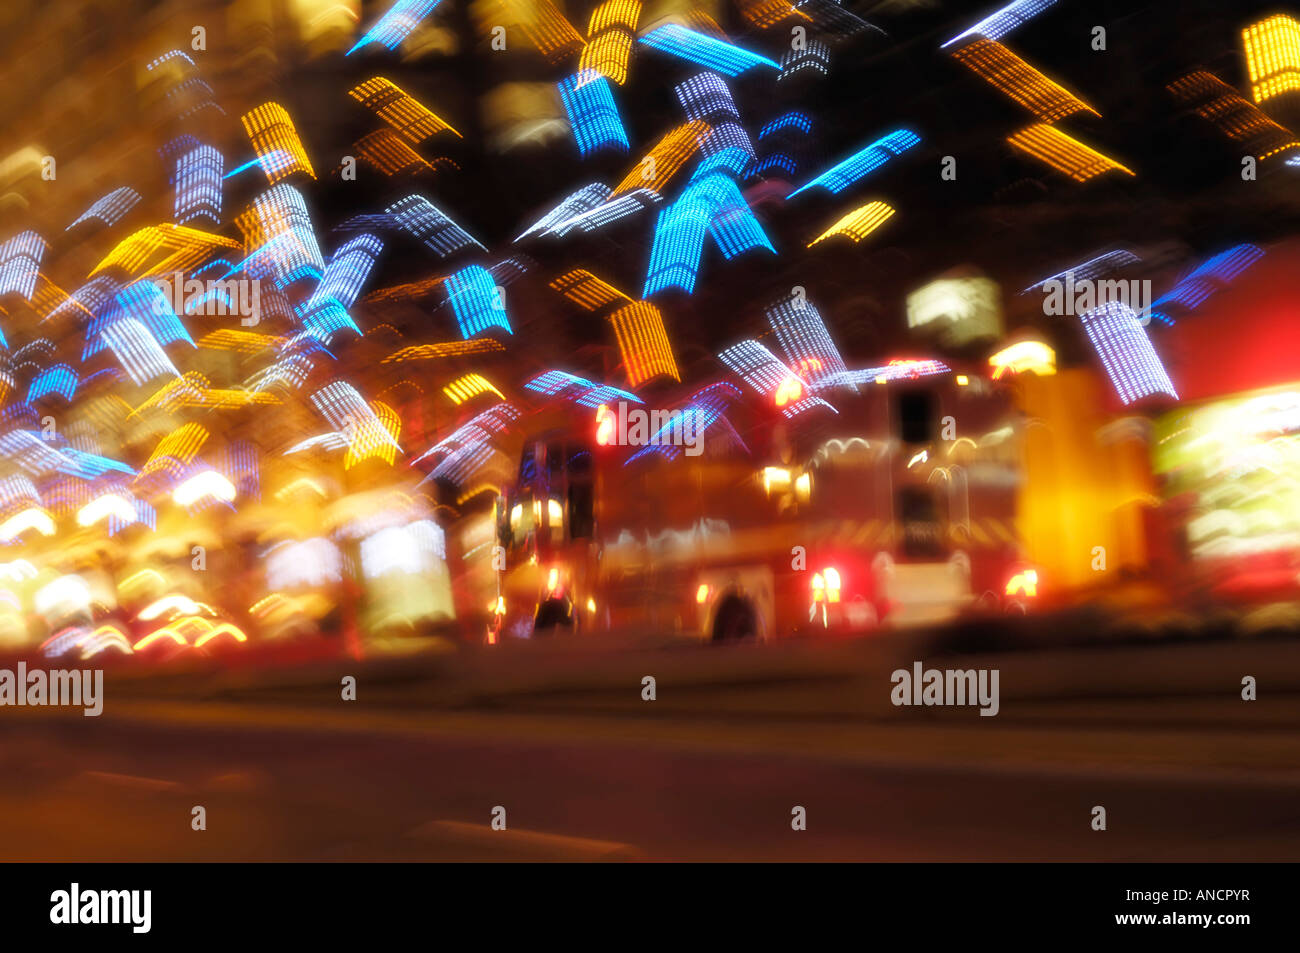 Abstract colorful holiday city lights at night Photo Stock